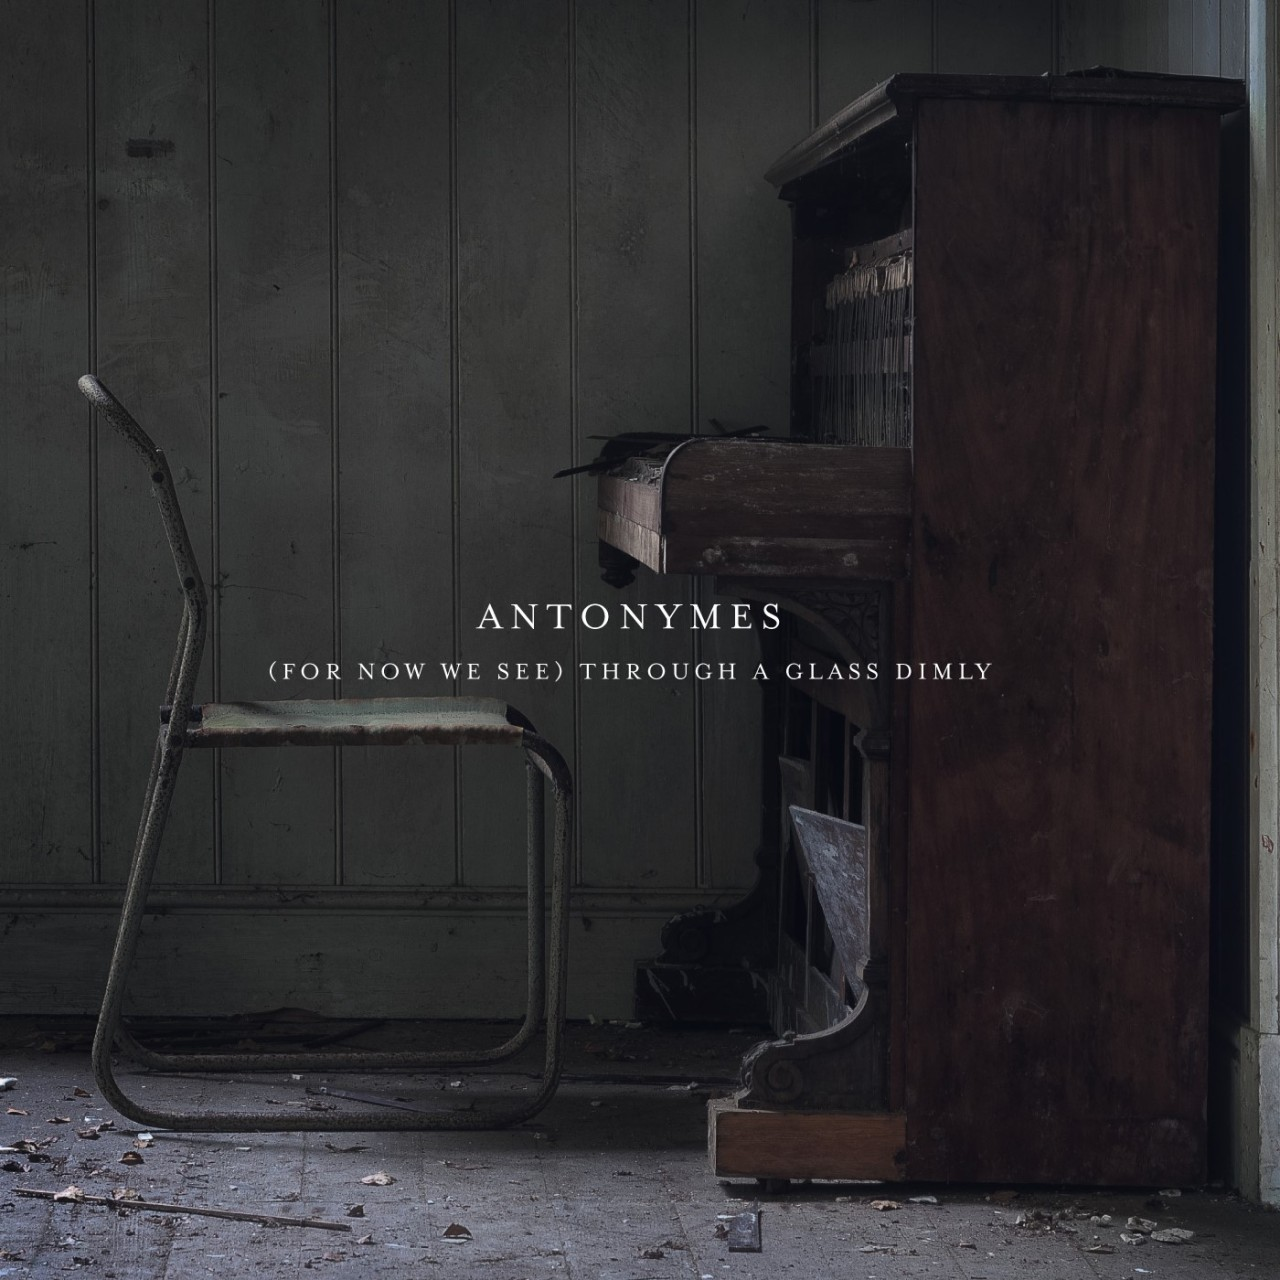 Antonymes ~ (For Now We See) Through A GlassDimly